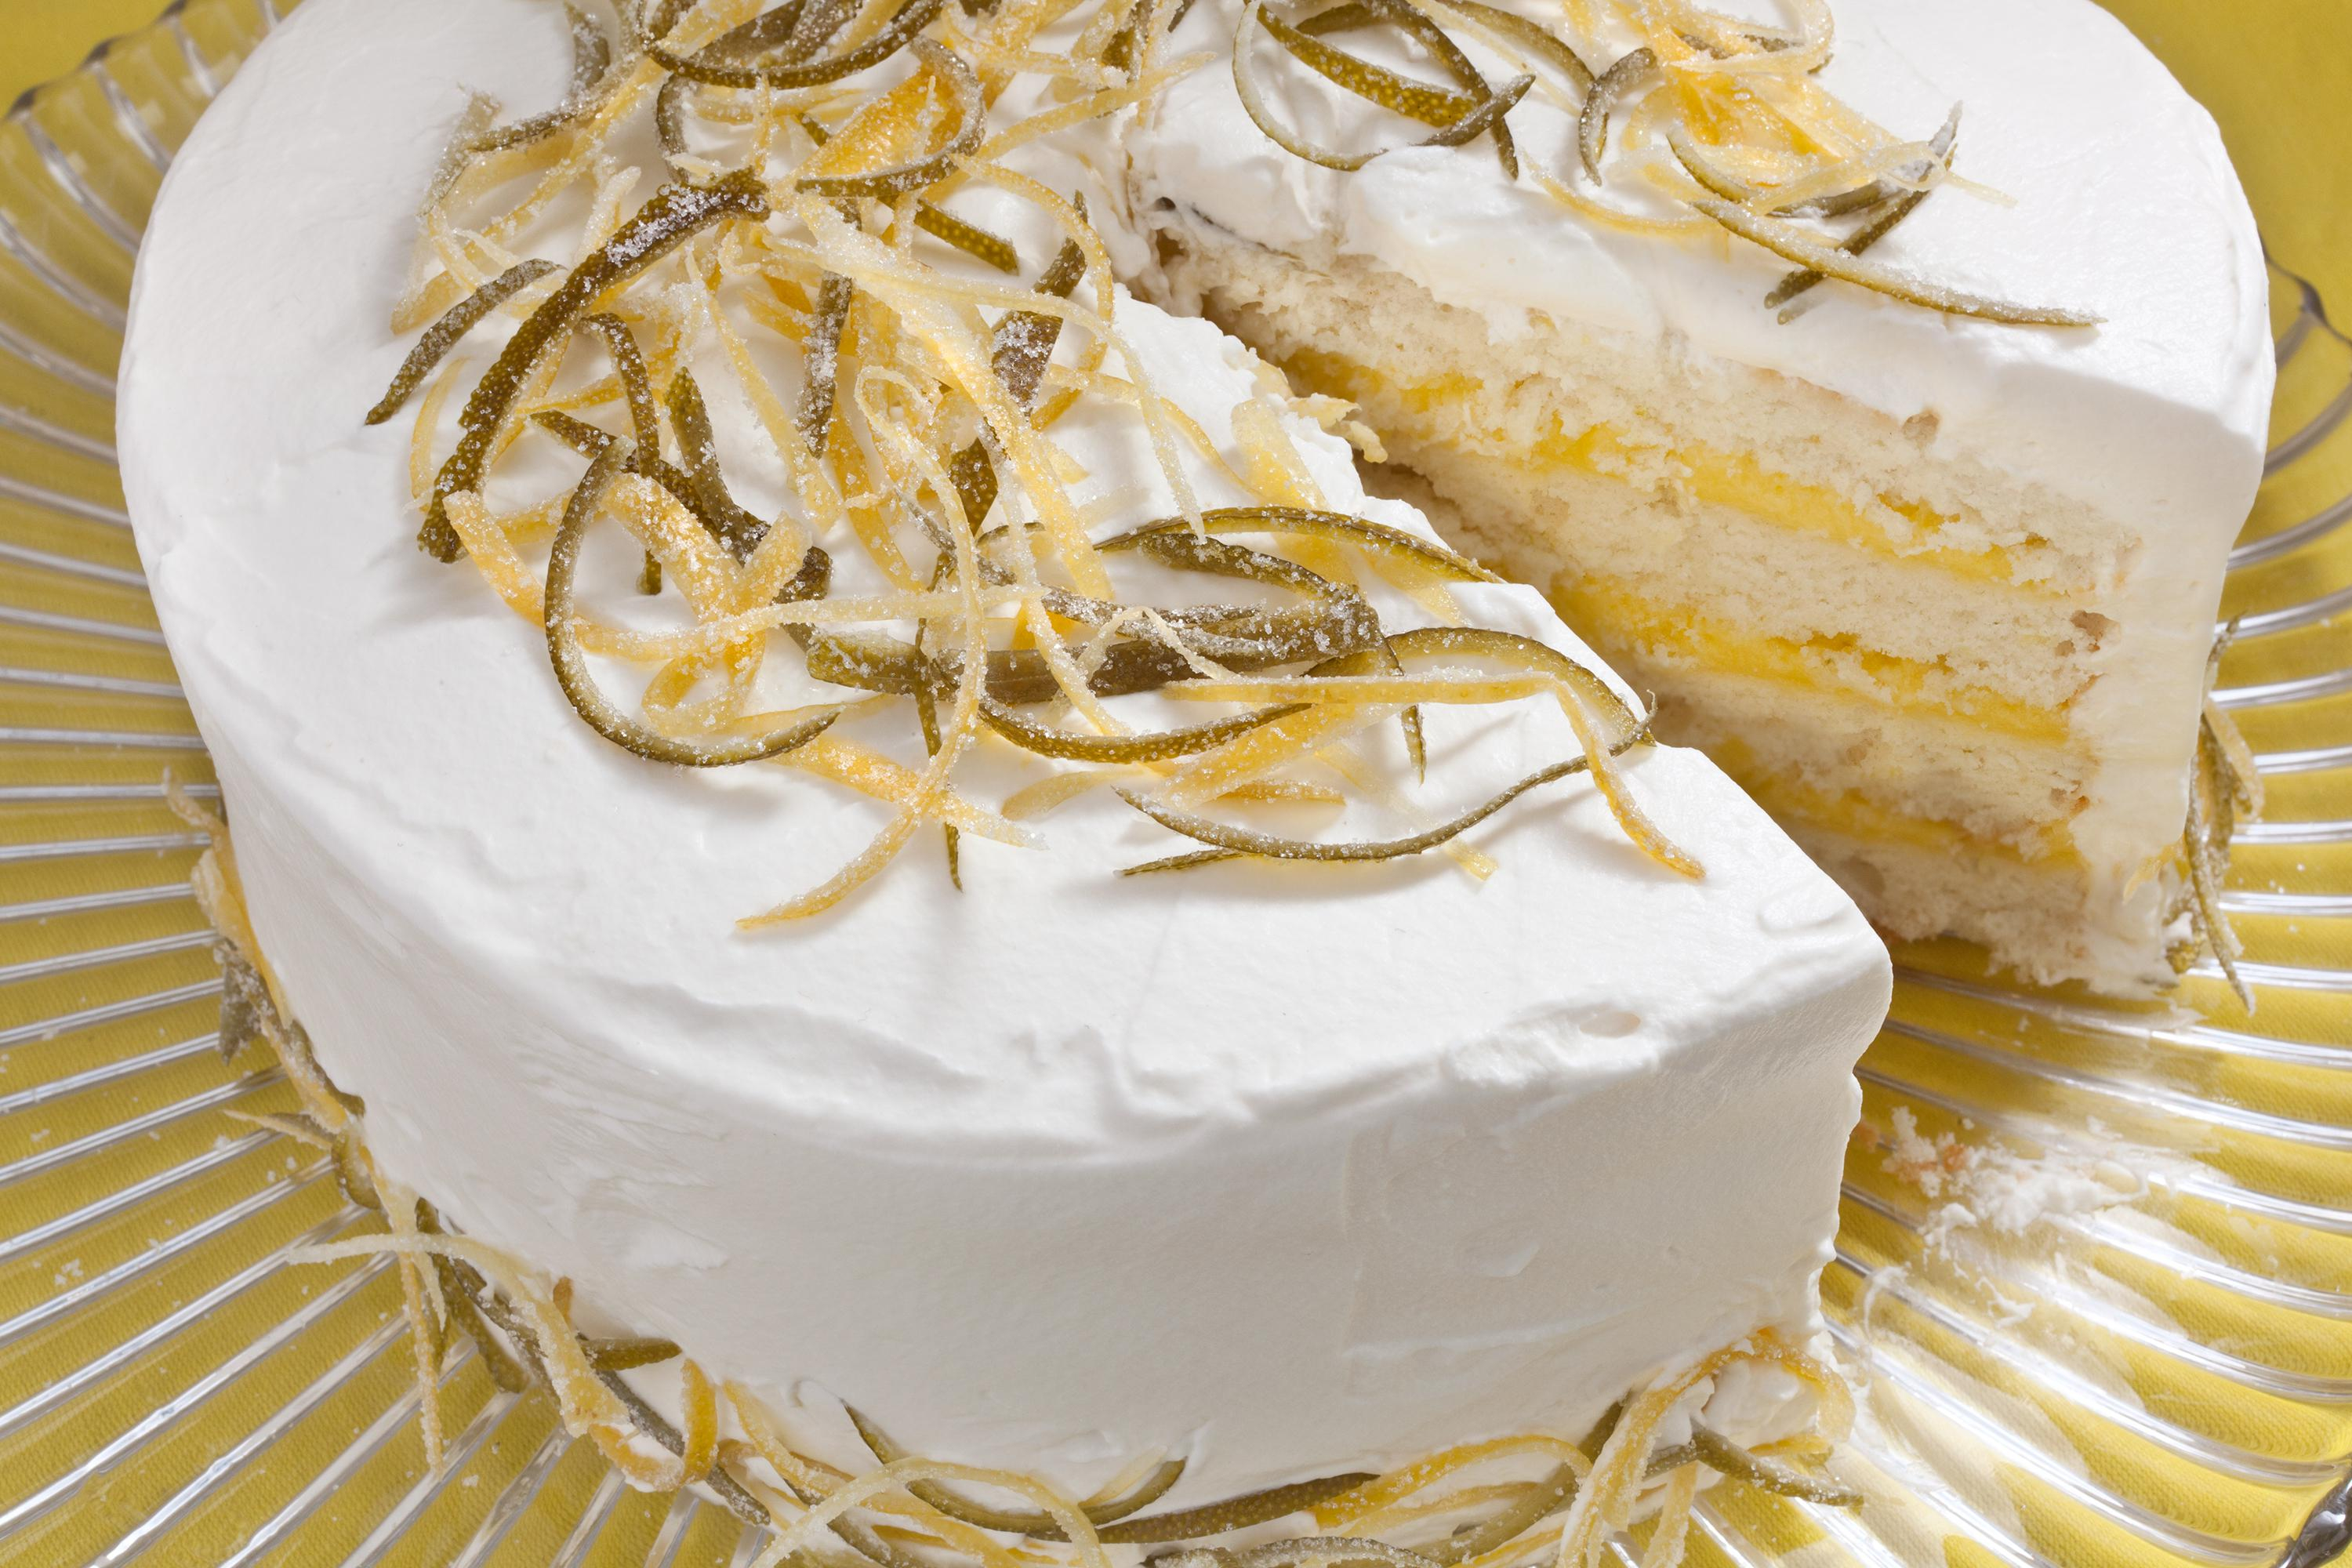 Birthday Cake Icing Recipe White Cake With Lemon Lime Curd Filling And Whipped Cream Frosting